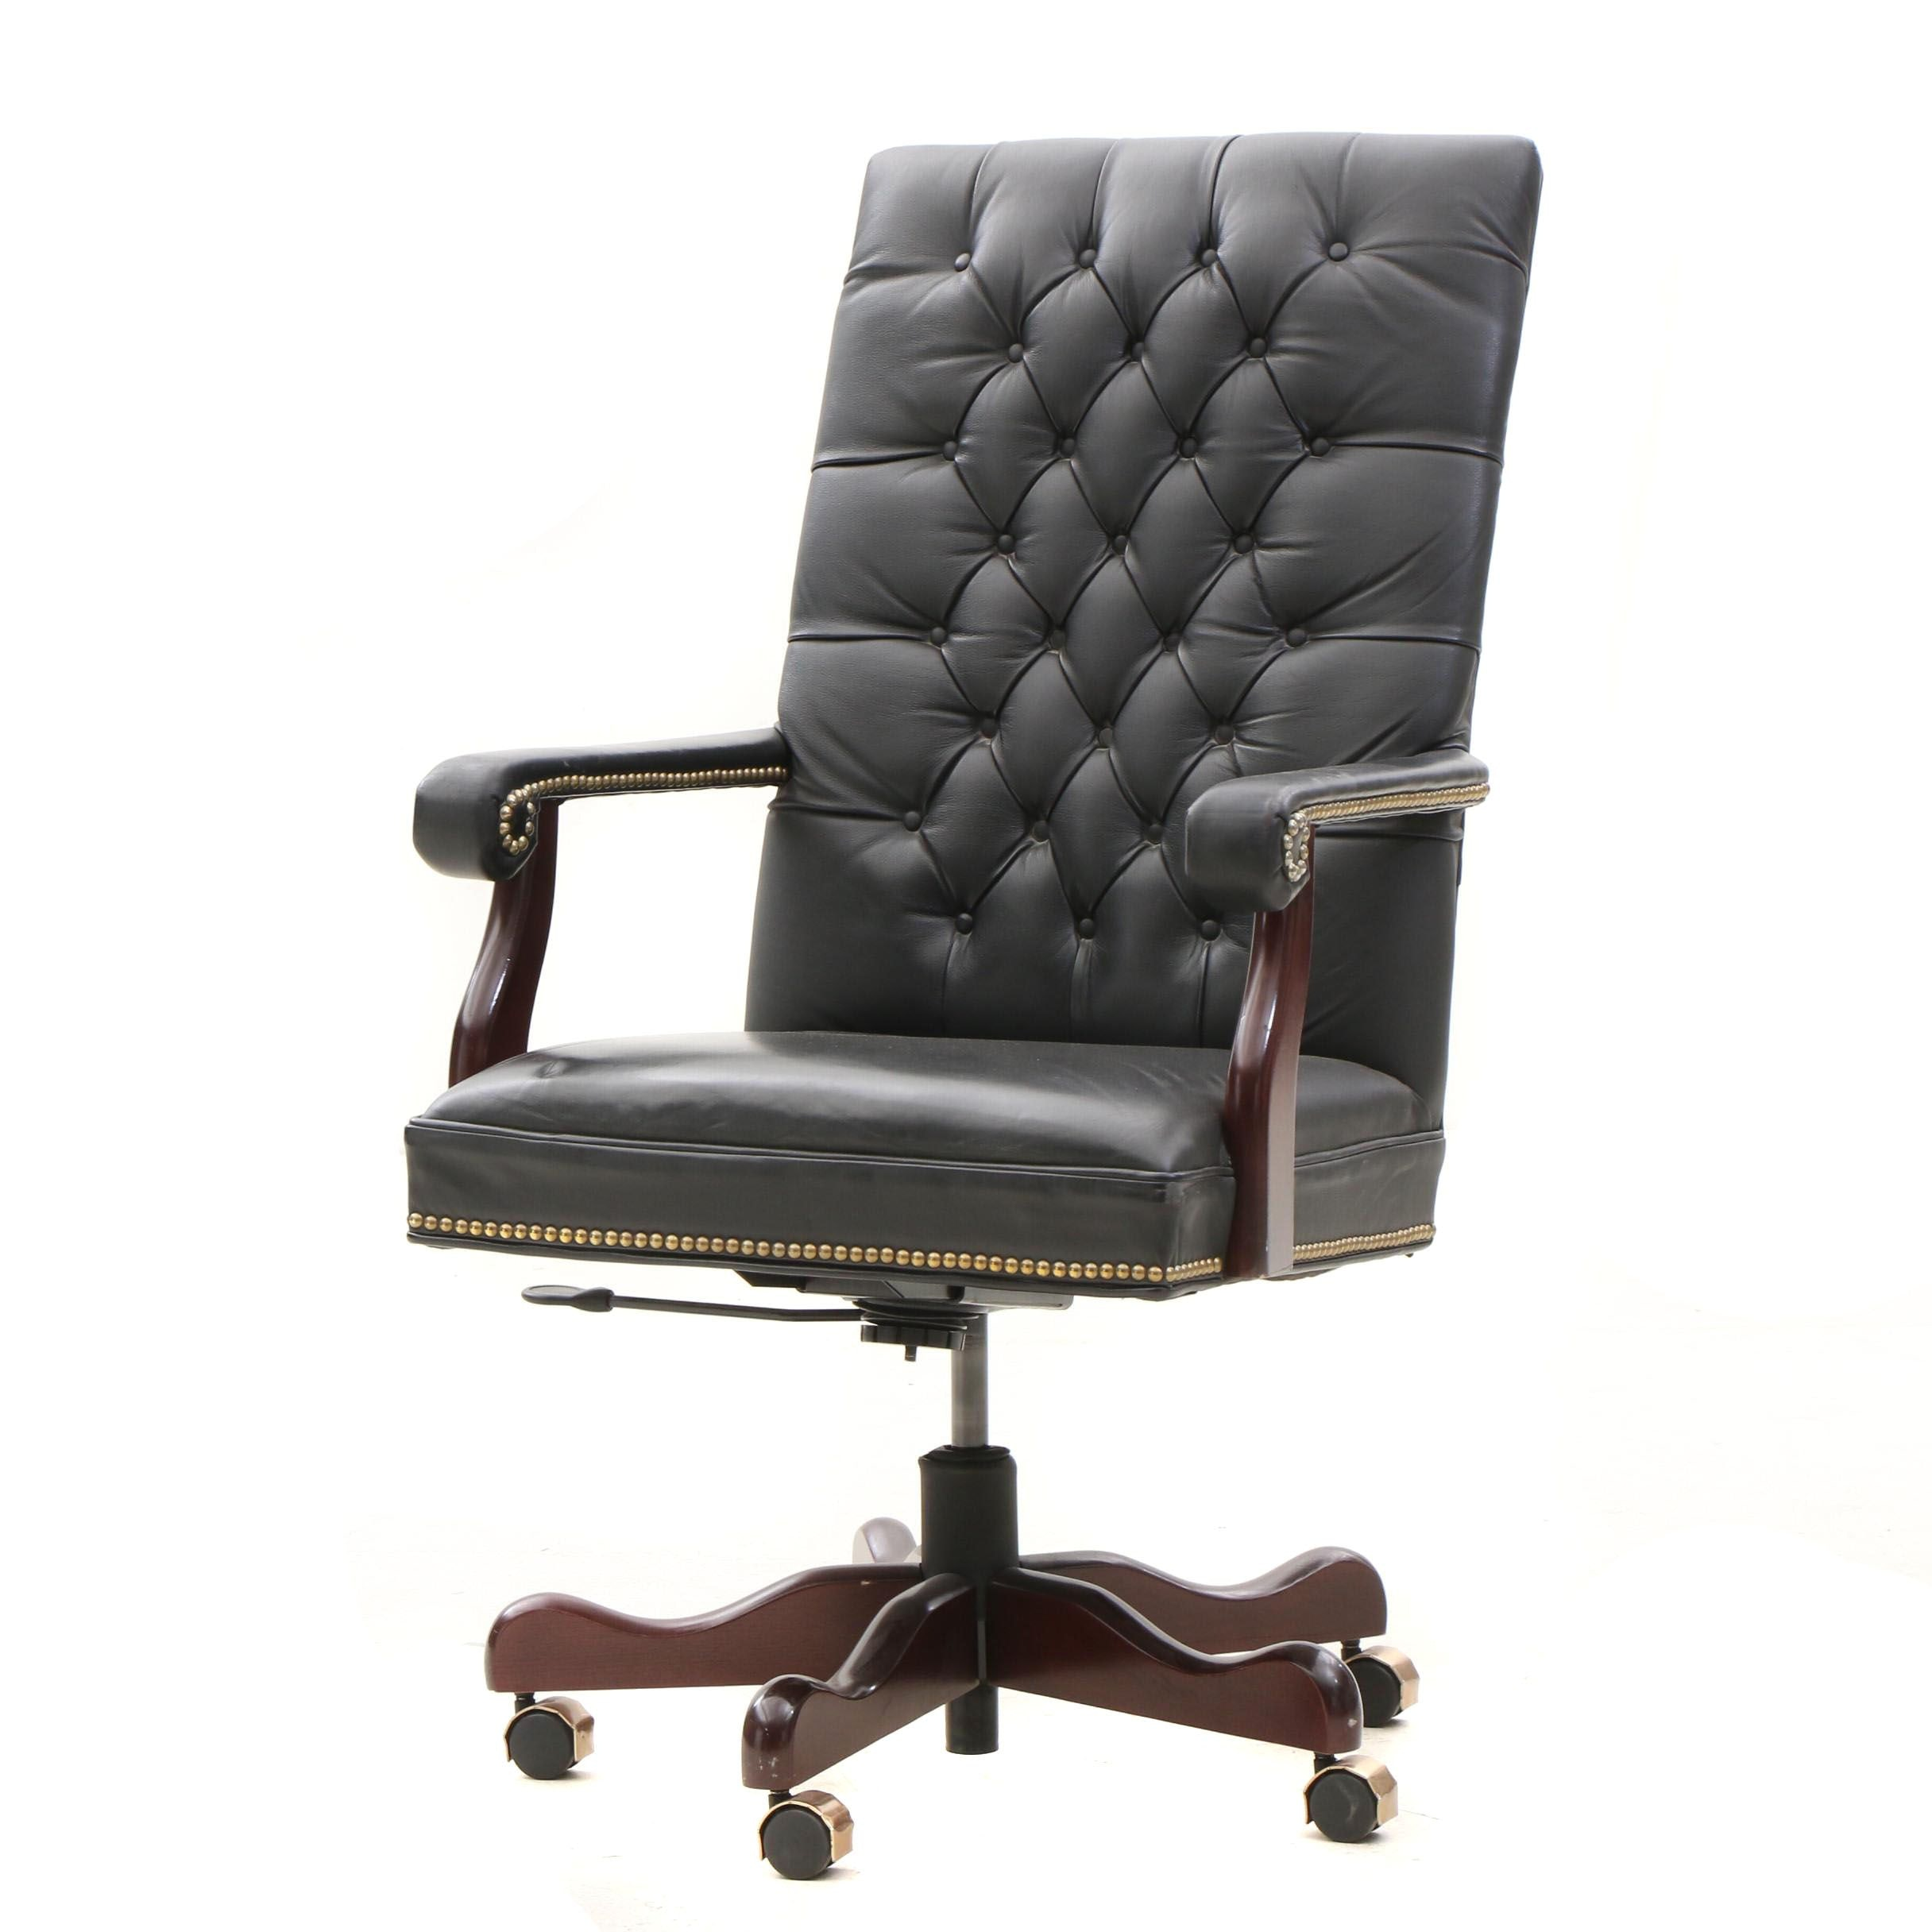 Button Tufted Leather Executive Office Chair by Indiana Furniture